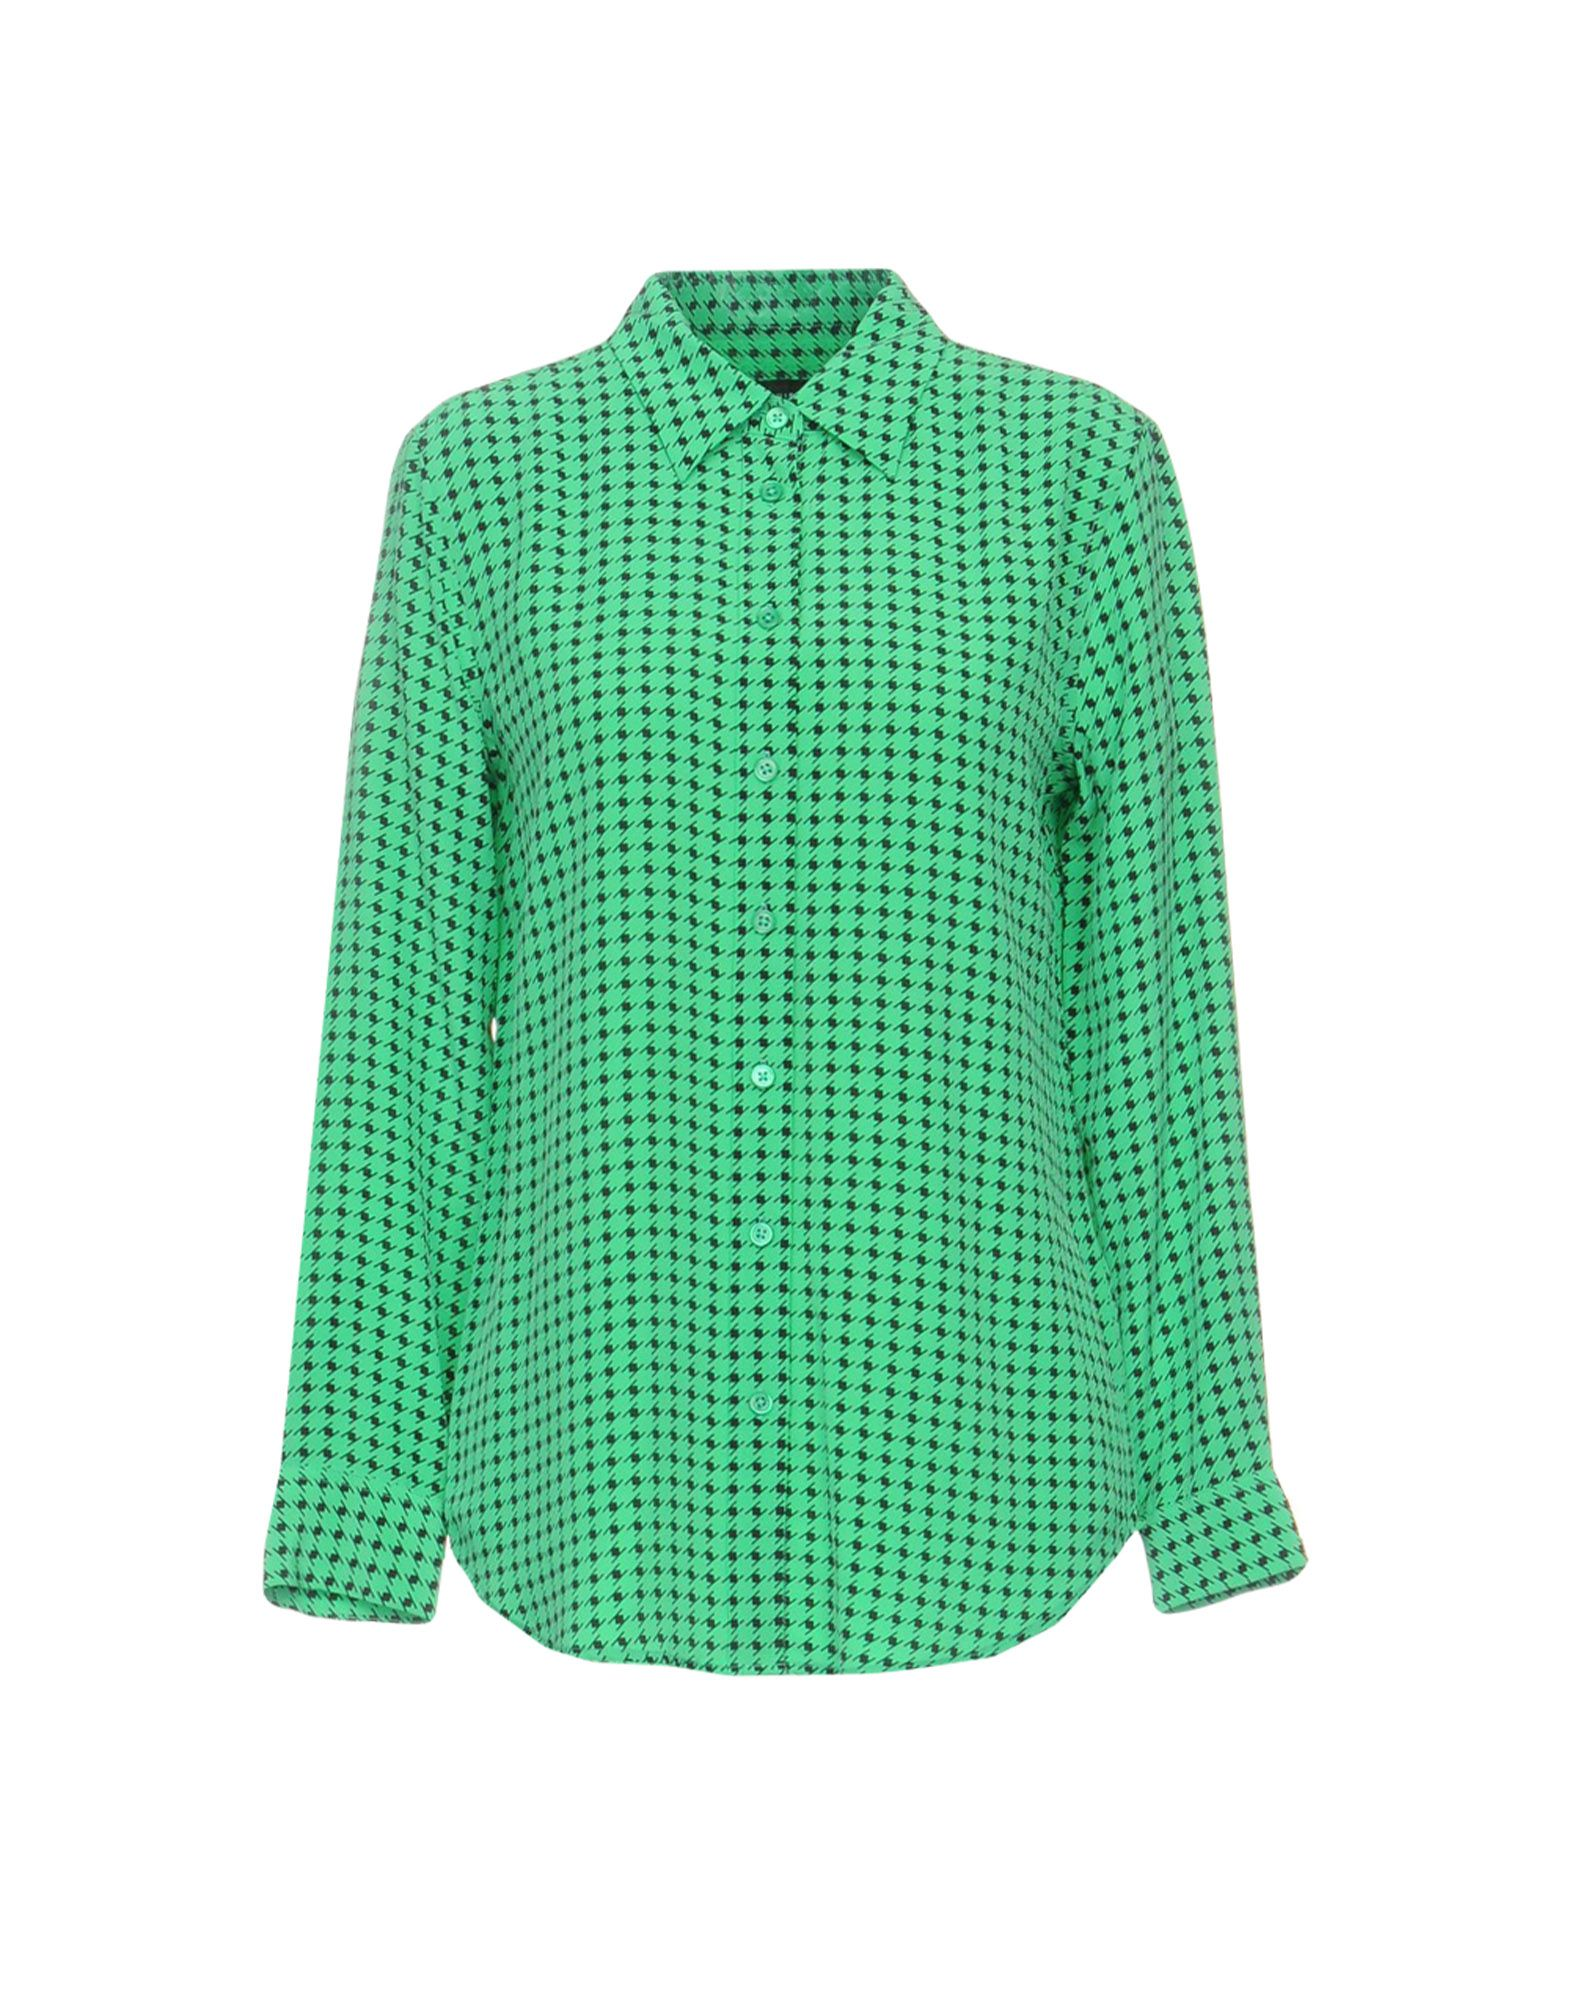 KATE MOSS EQUIPMENT Patterned Shirts & Blouses in Light Green